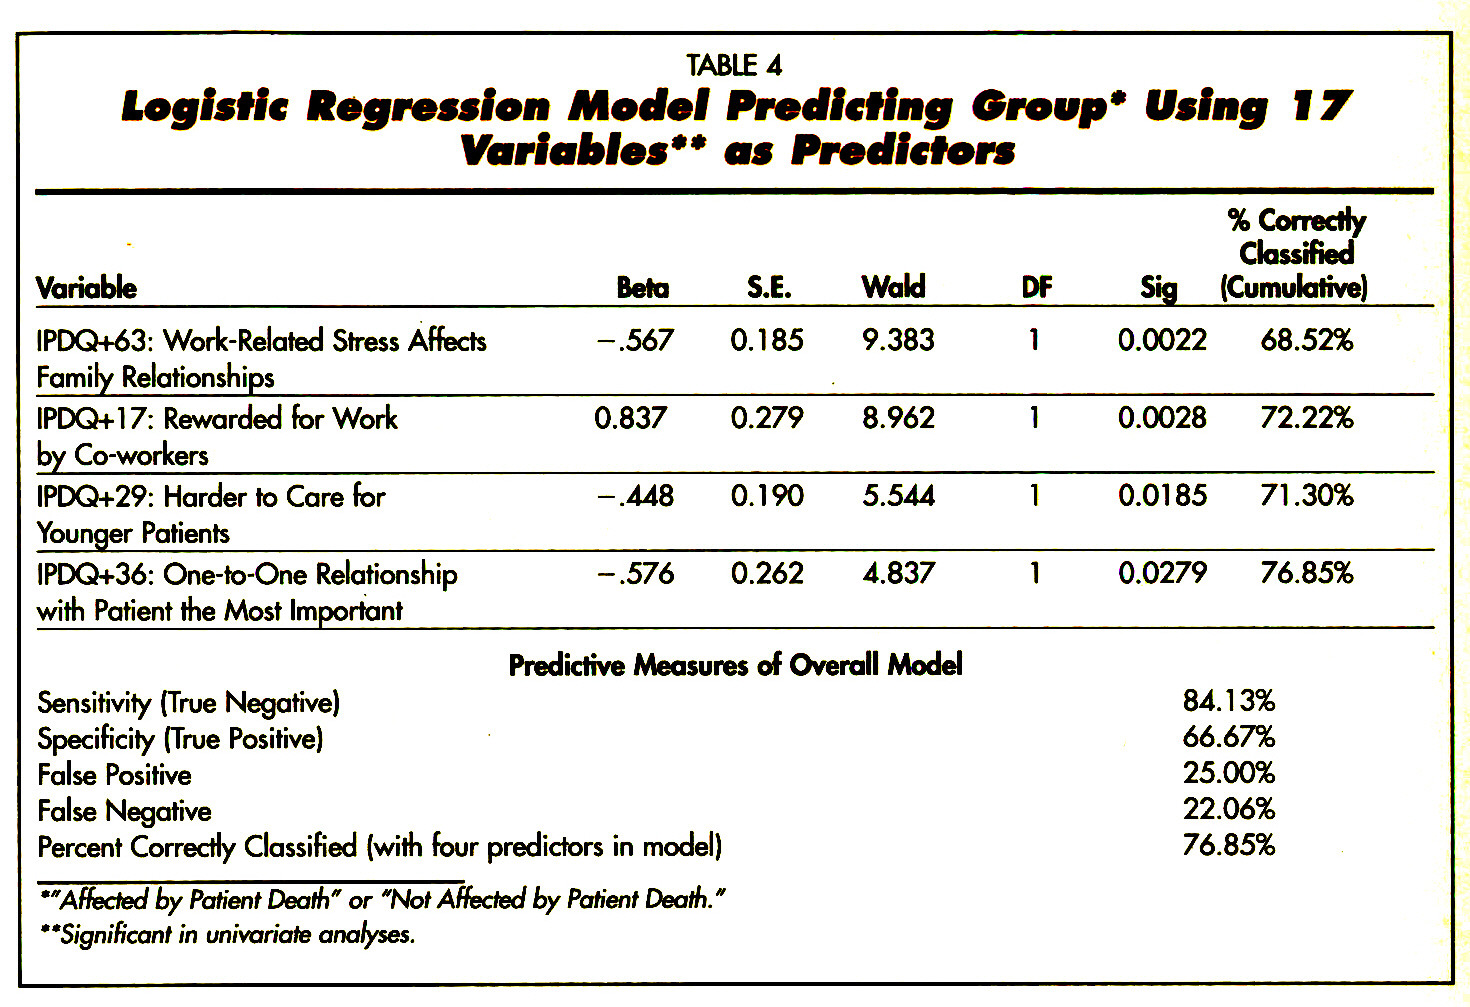 TABLE 4logistic Regression Model Predicting Group* Using IT Variables** as Predictors